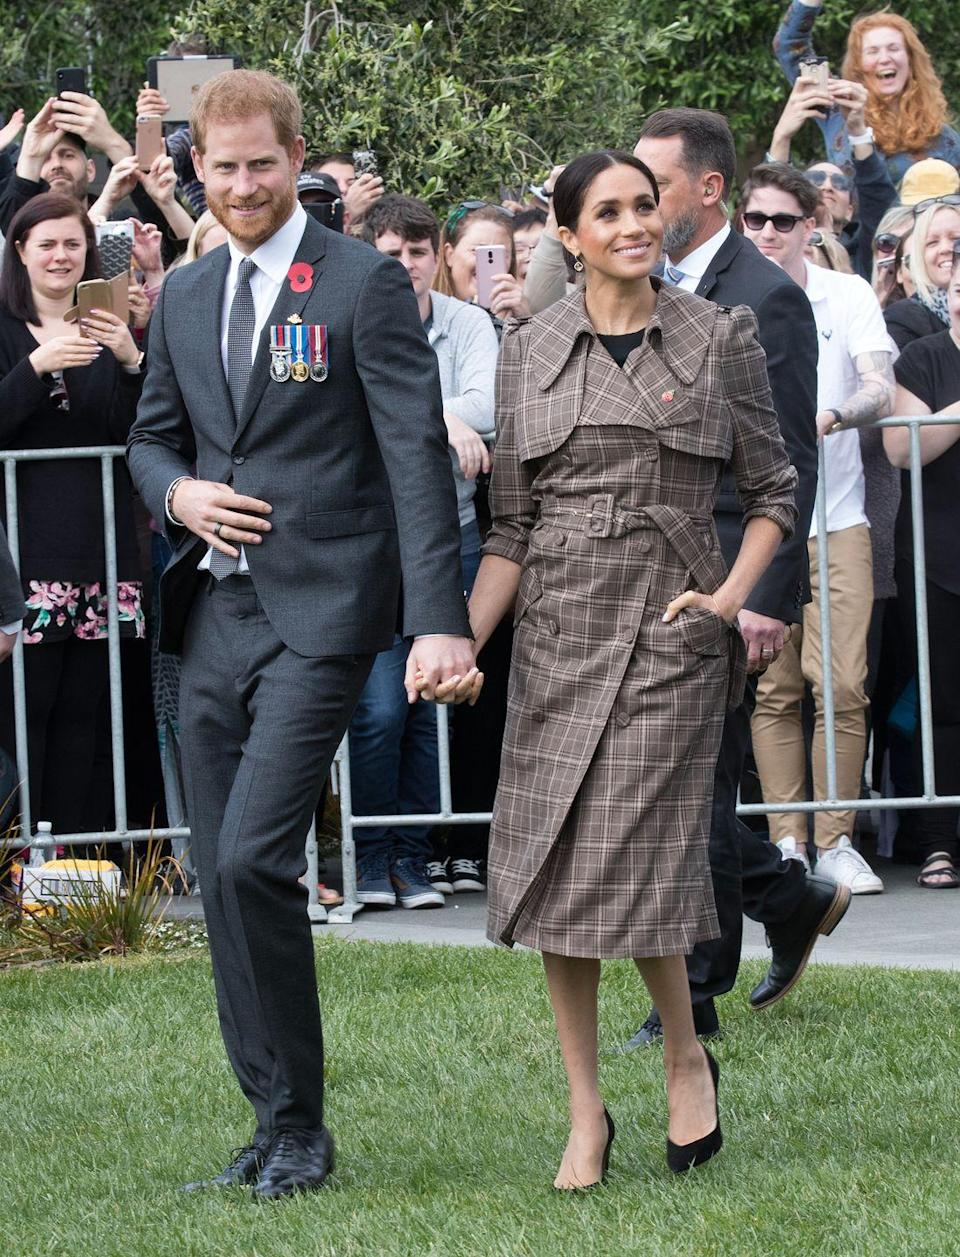 """<p>Harry and Meghan touched down in New Zealand with a busy day of royal engagements ahead. <a href=""""https://www.townandcountrymag.com/style/fashion-trends/a24274859/meghan-markle-plaid-trench-coat-royal-tour-wellington-new-zealand-photo/"""" rel=""""nofollow noopener"""" target=""""_blank"""" data-ylk=""""slk:The Duchess wore a plaid trench"""" class=""""link rapid-noclick-resp"""">The Duchess wore a plaid trench </a>by Karen Walker with a black dress by ASOS. She also wore a pair of heels by Sarah Flint, and wore a poppy pin to honor soldiers who have died in war. </p><p><a class=""""link rapid-noclick-resp"""" href=""""https://go.redirectingat.com?id=74968X1596630&url=https%3A%2F%2Fus.asos.com%2Fasos-design%2Fasos-design-wiggle-mini-dress%2Fprd%2F10129382%3Faffid%3D10607%26pubref%3D1171%26transaction_id%3D102e85e635c05dce6577c495c7274e&sref=https%3A%2F%2Fwww.townandcountrymag.com%2Fstyle%2Ffashion-trends%2Fg3272%2Fmeghan-markle-preppy-style%2F"""" rel=""""nofollow noopener"""" target=""""_blank"""" data-ylk=""""slk:SHOP NOW"""">SHOP NOW</a> <em>ASOS Wiggle Mini Dress, $56</em></p>"""